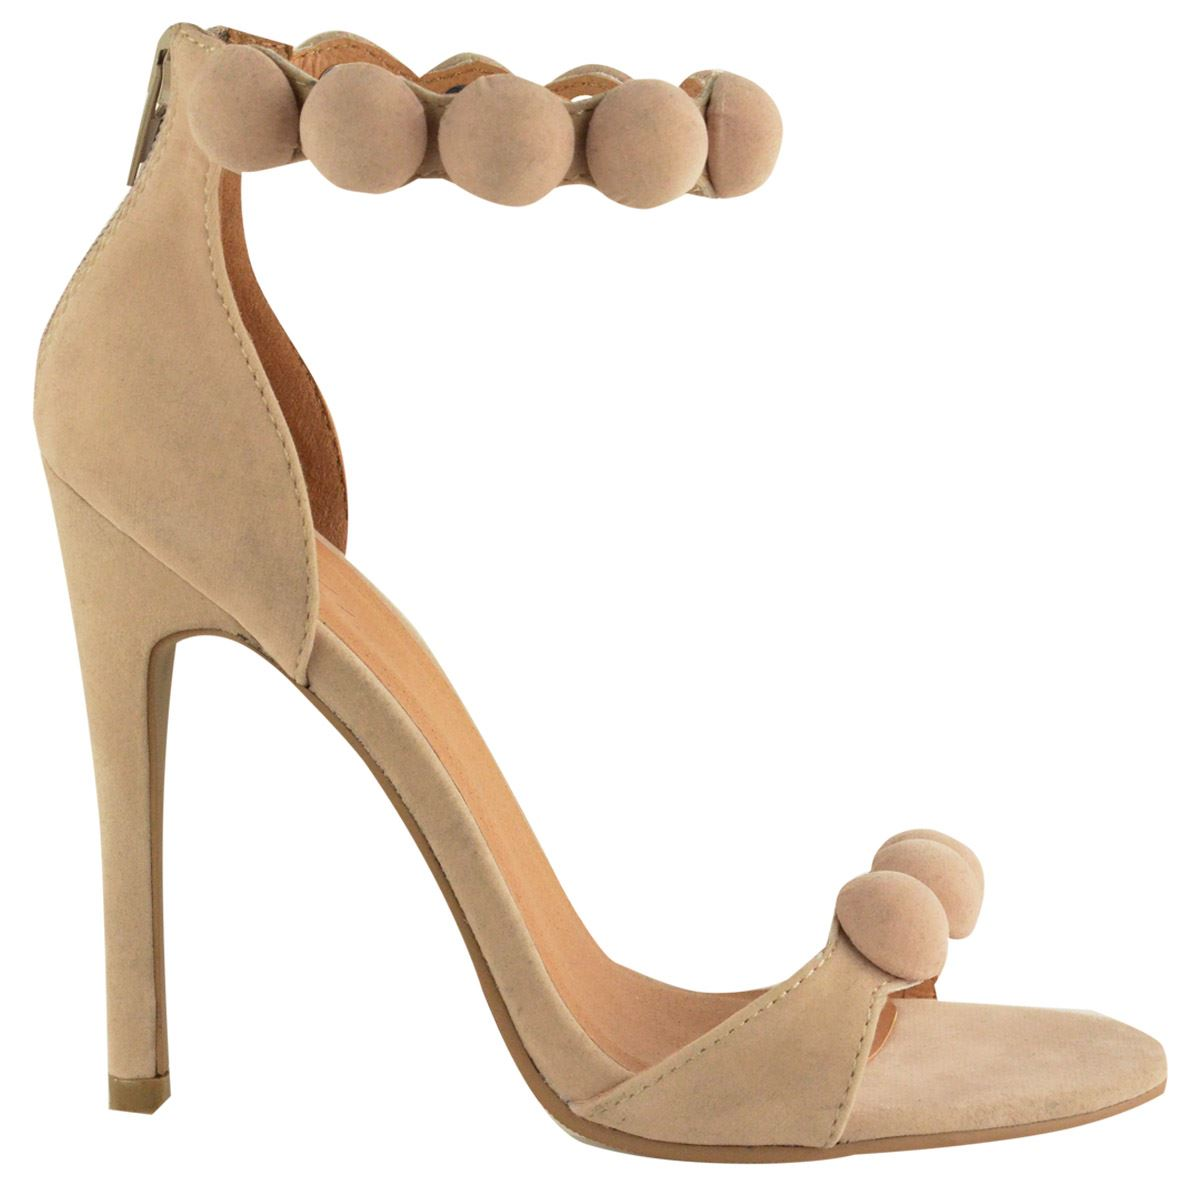 Womens Pom Pom Ankle Strappy Stiletto High Heel Ladies Peep Toe Sandals Shoes